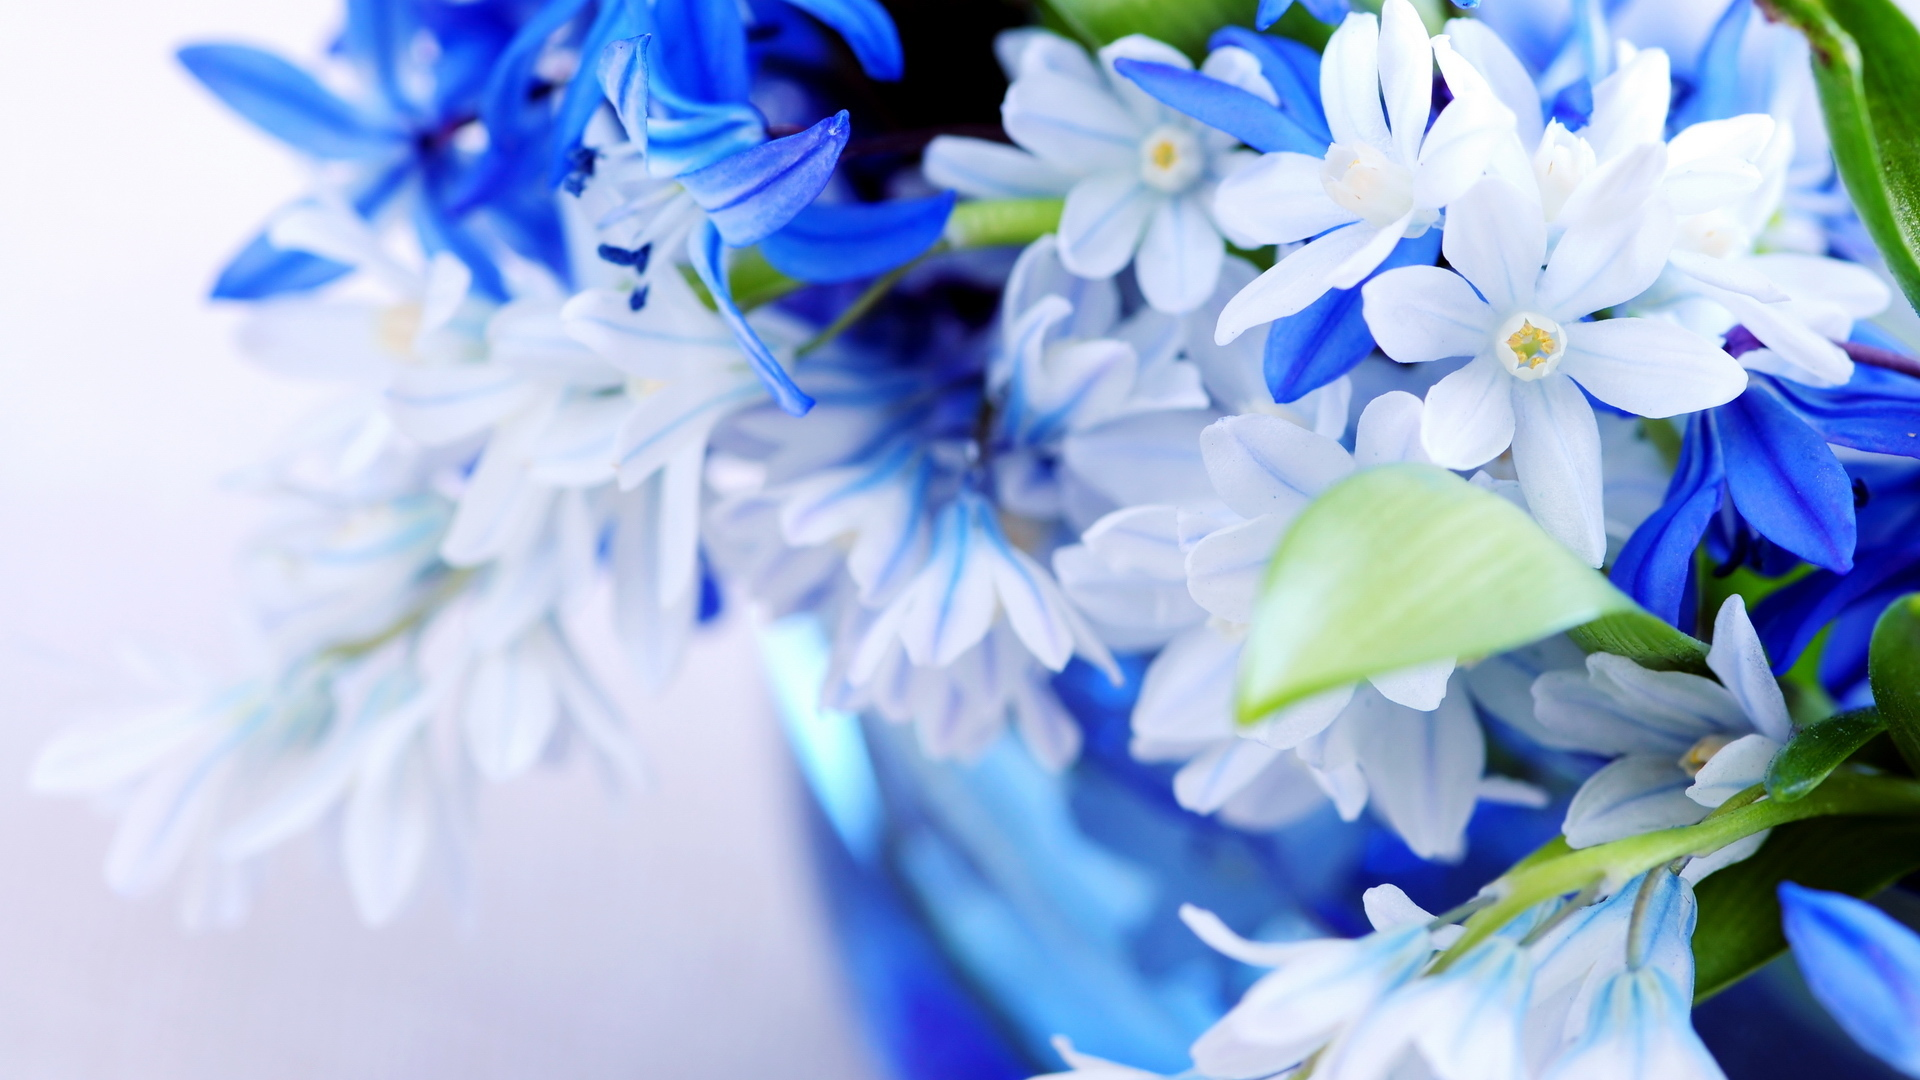 Desktop Wallpaper hd 3D Full Screen Flowers   Wallpapers And Pictures 1920x1080